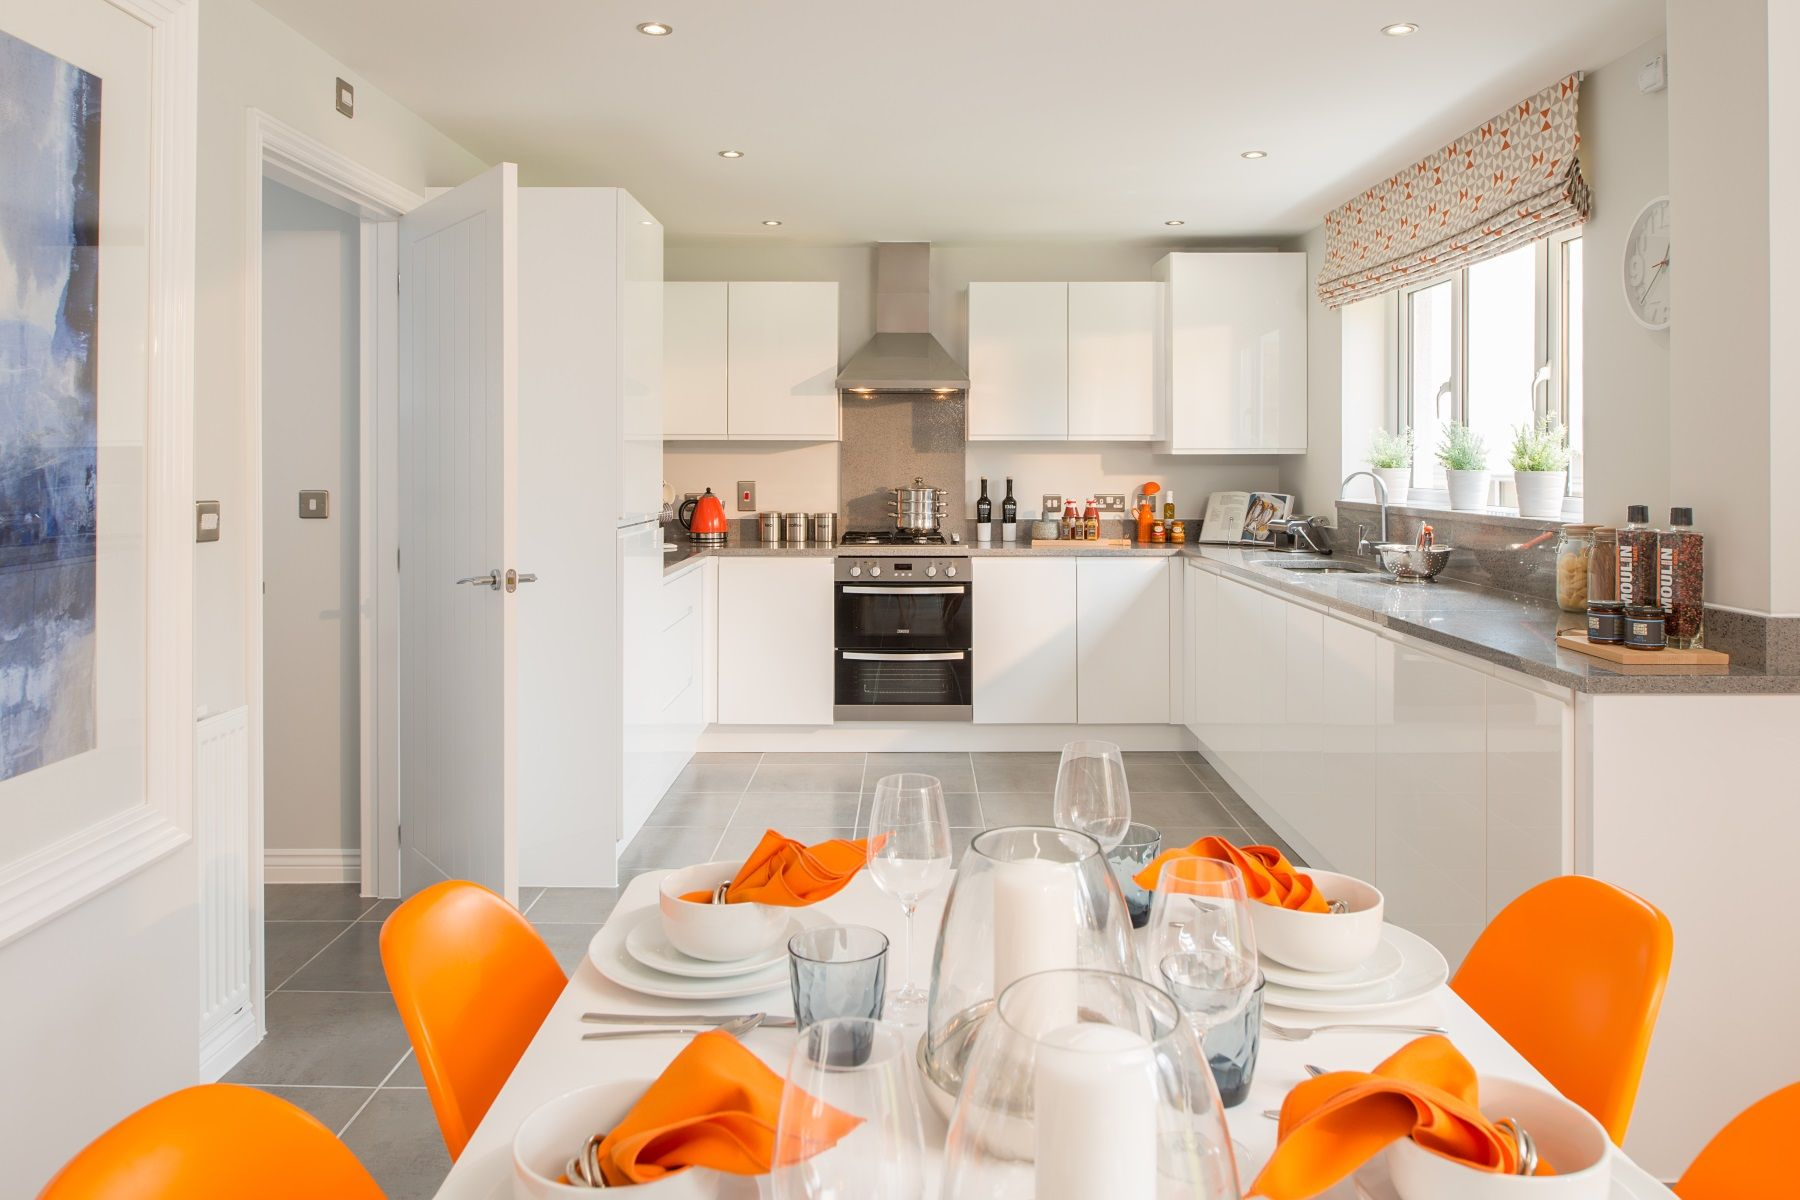 TW Exeter - Rackenford Meadow - Shelford example kitchen